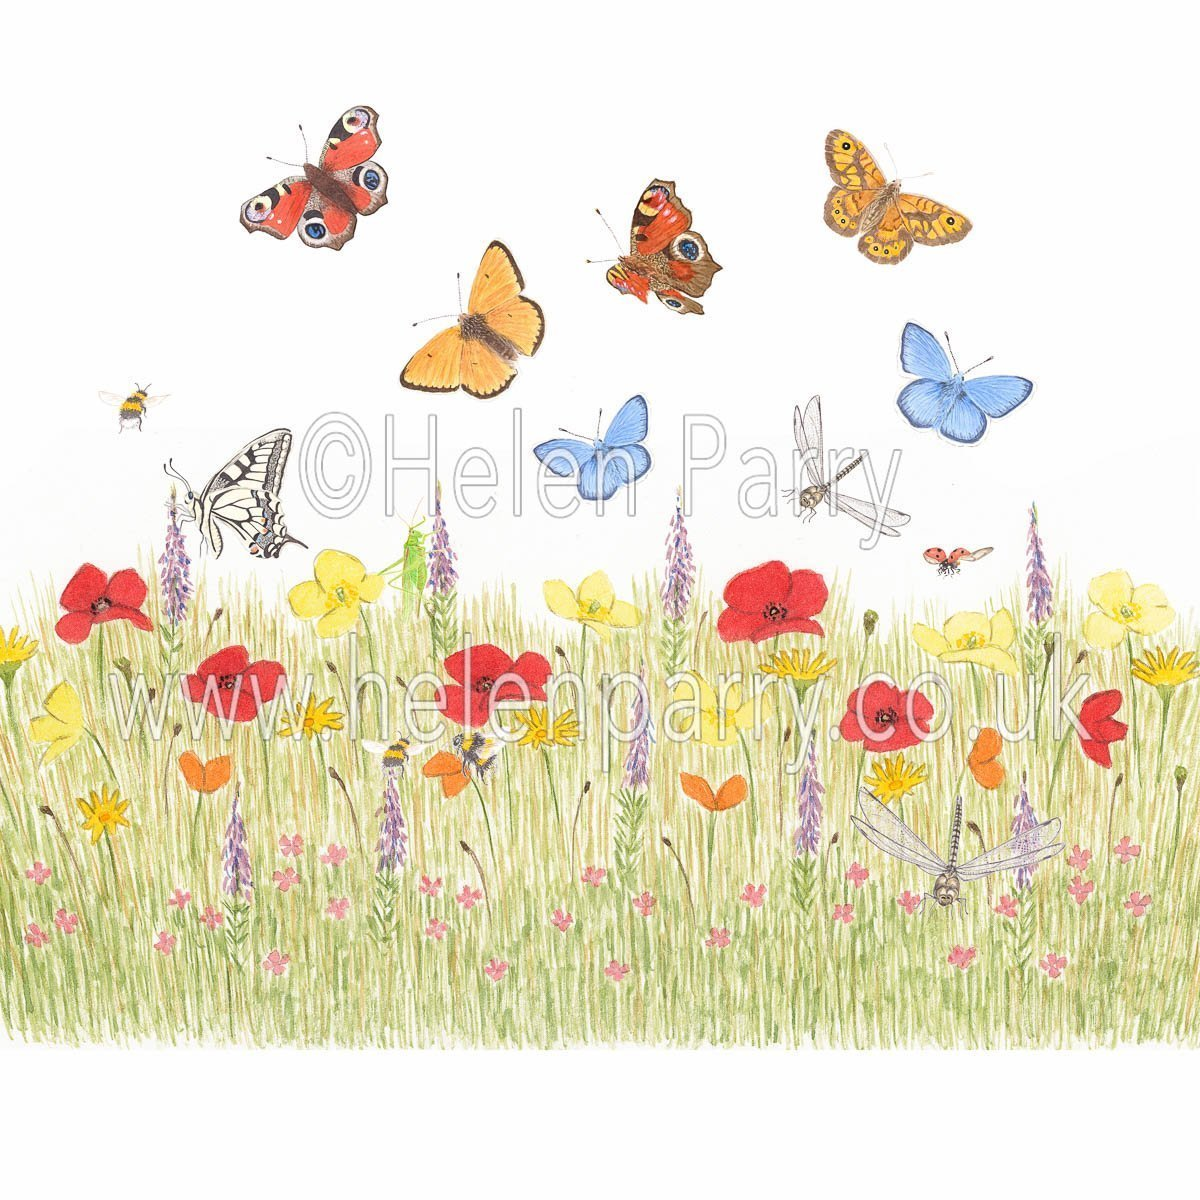 greeting card poppy meadow with daises purple toadflax butterflies bees ladybirds dragonfly